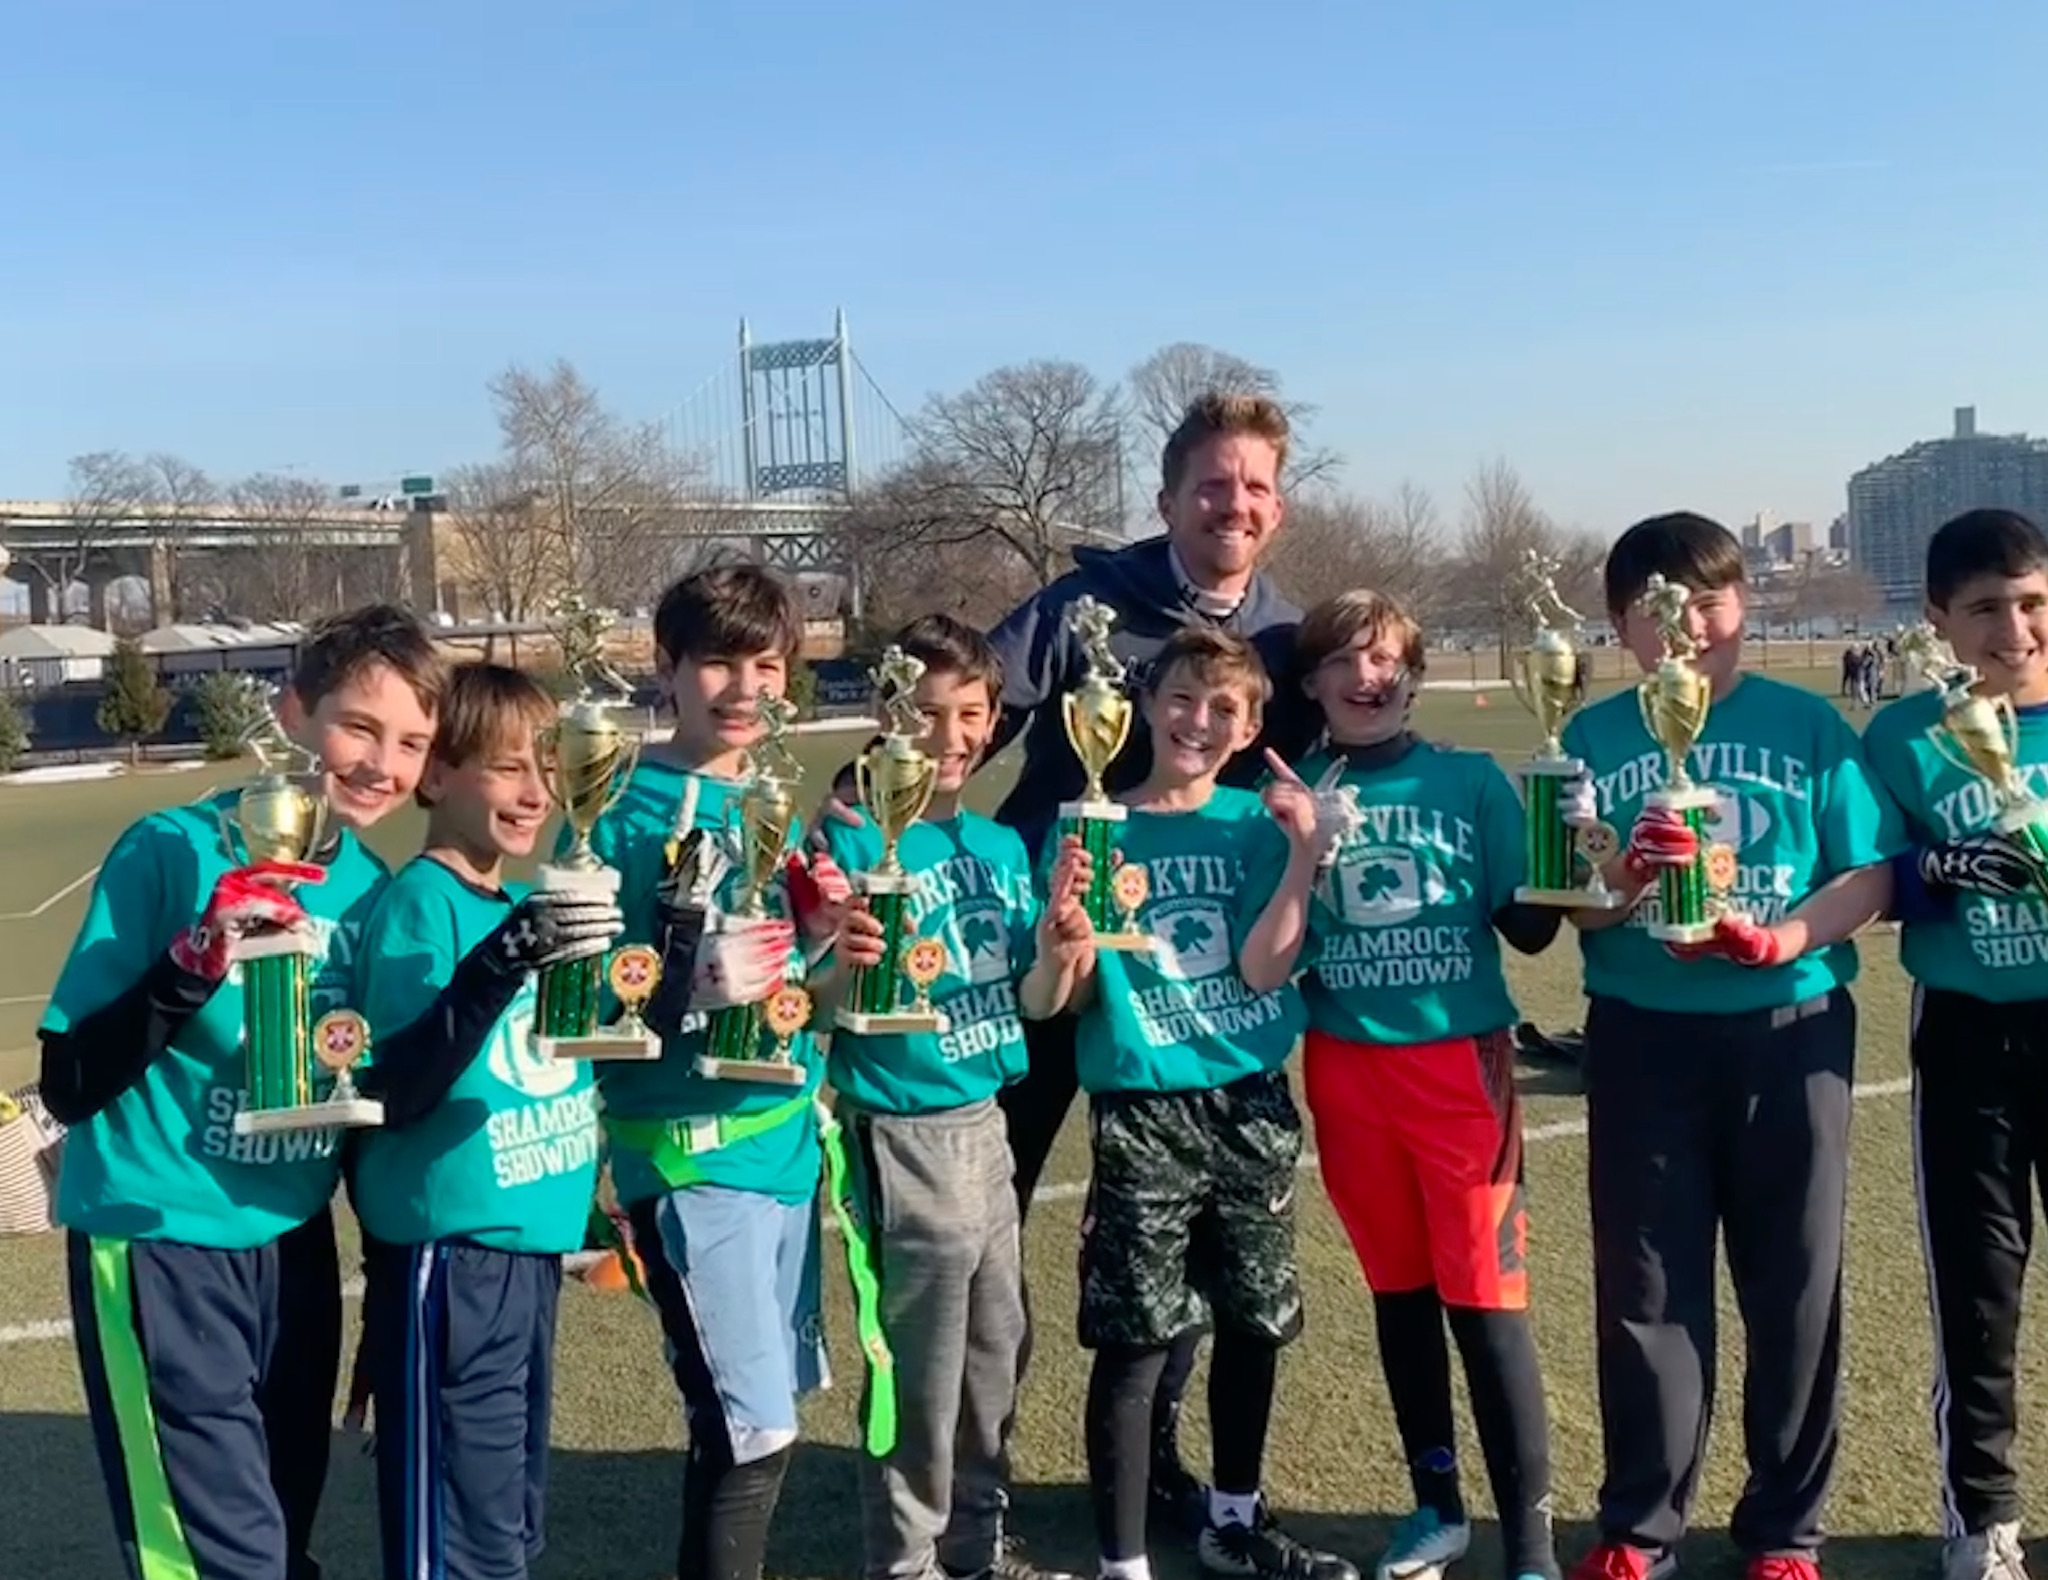 Meanwhile back in NYC, Rob coached a tournament and his team went undefeated!! It was agony to not be with Felicity each moment during this time but we both agreed that having so much going on that particular weekend was actually a blessing.